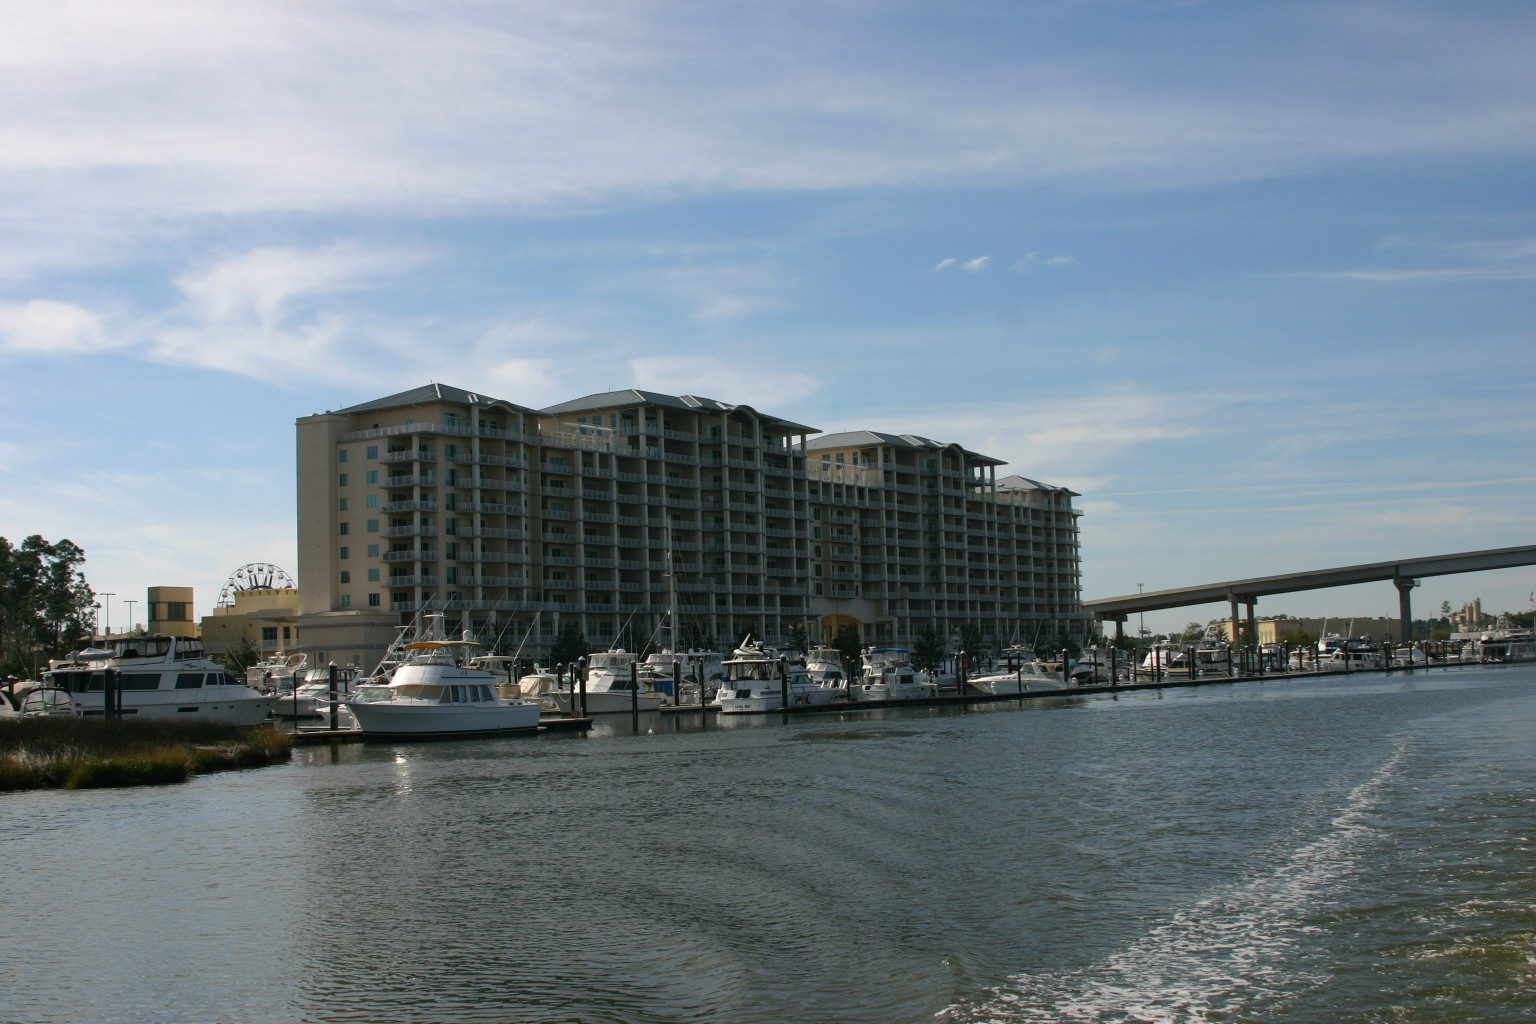 The Querrey's QUEST: 11/10/2010 HOMEPORT MARINA TO PALAFOX ...